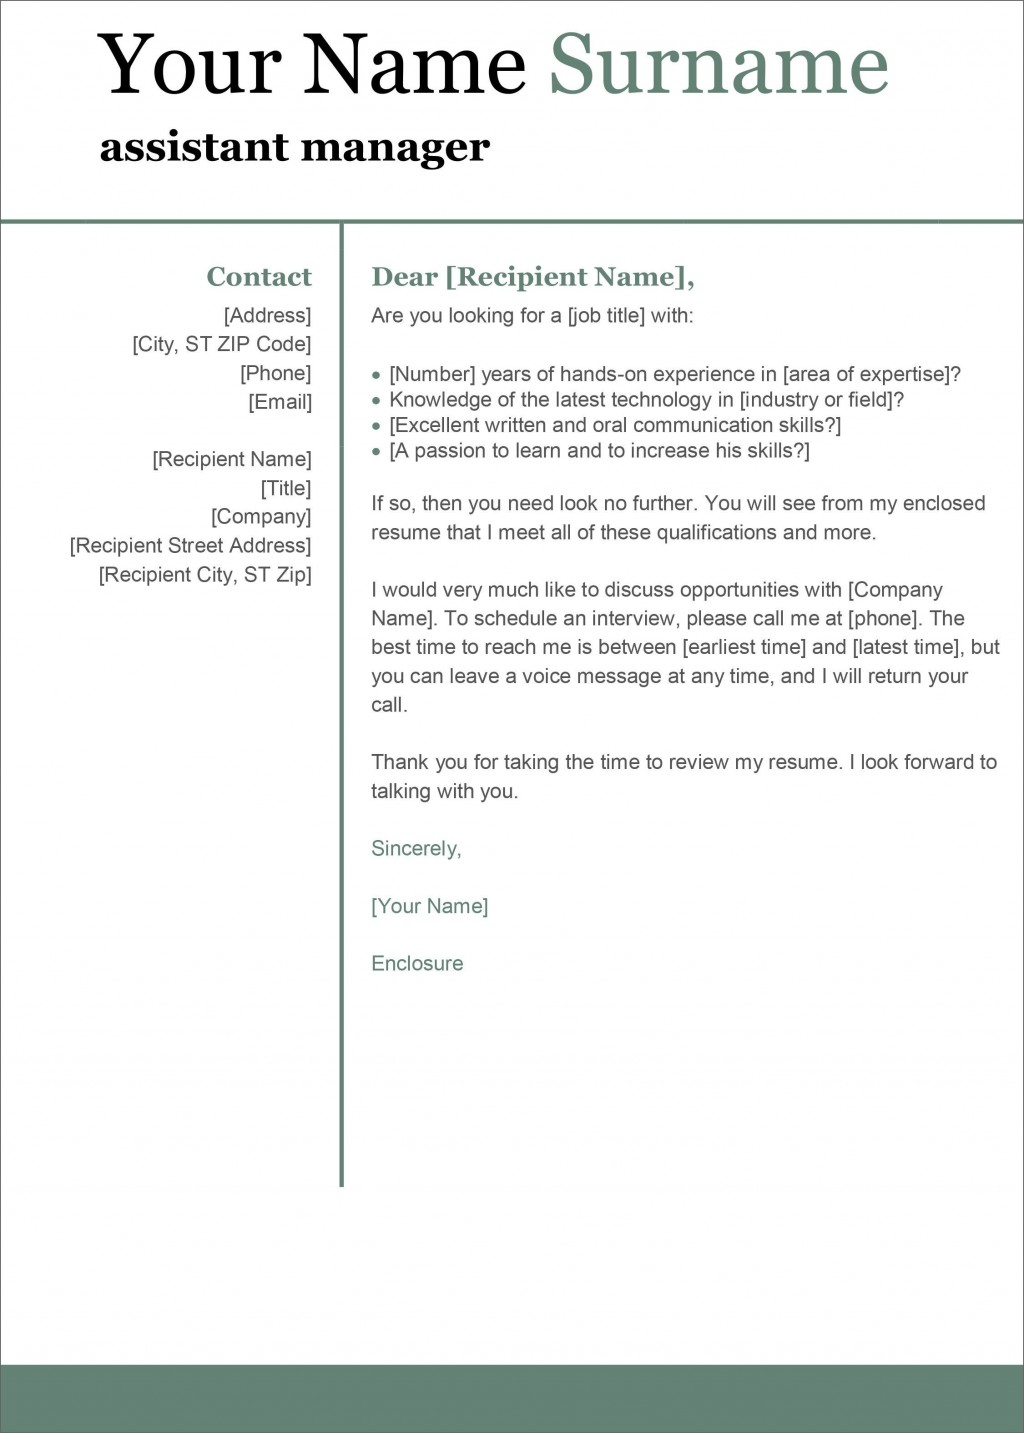 004 Astounding Microsoft Cover Letter Template High Definition  Templates Free Resume Word Download 2010 PageLarge